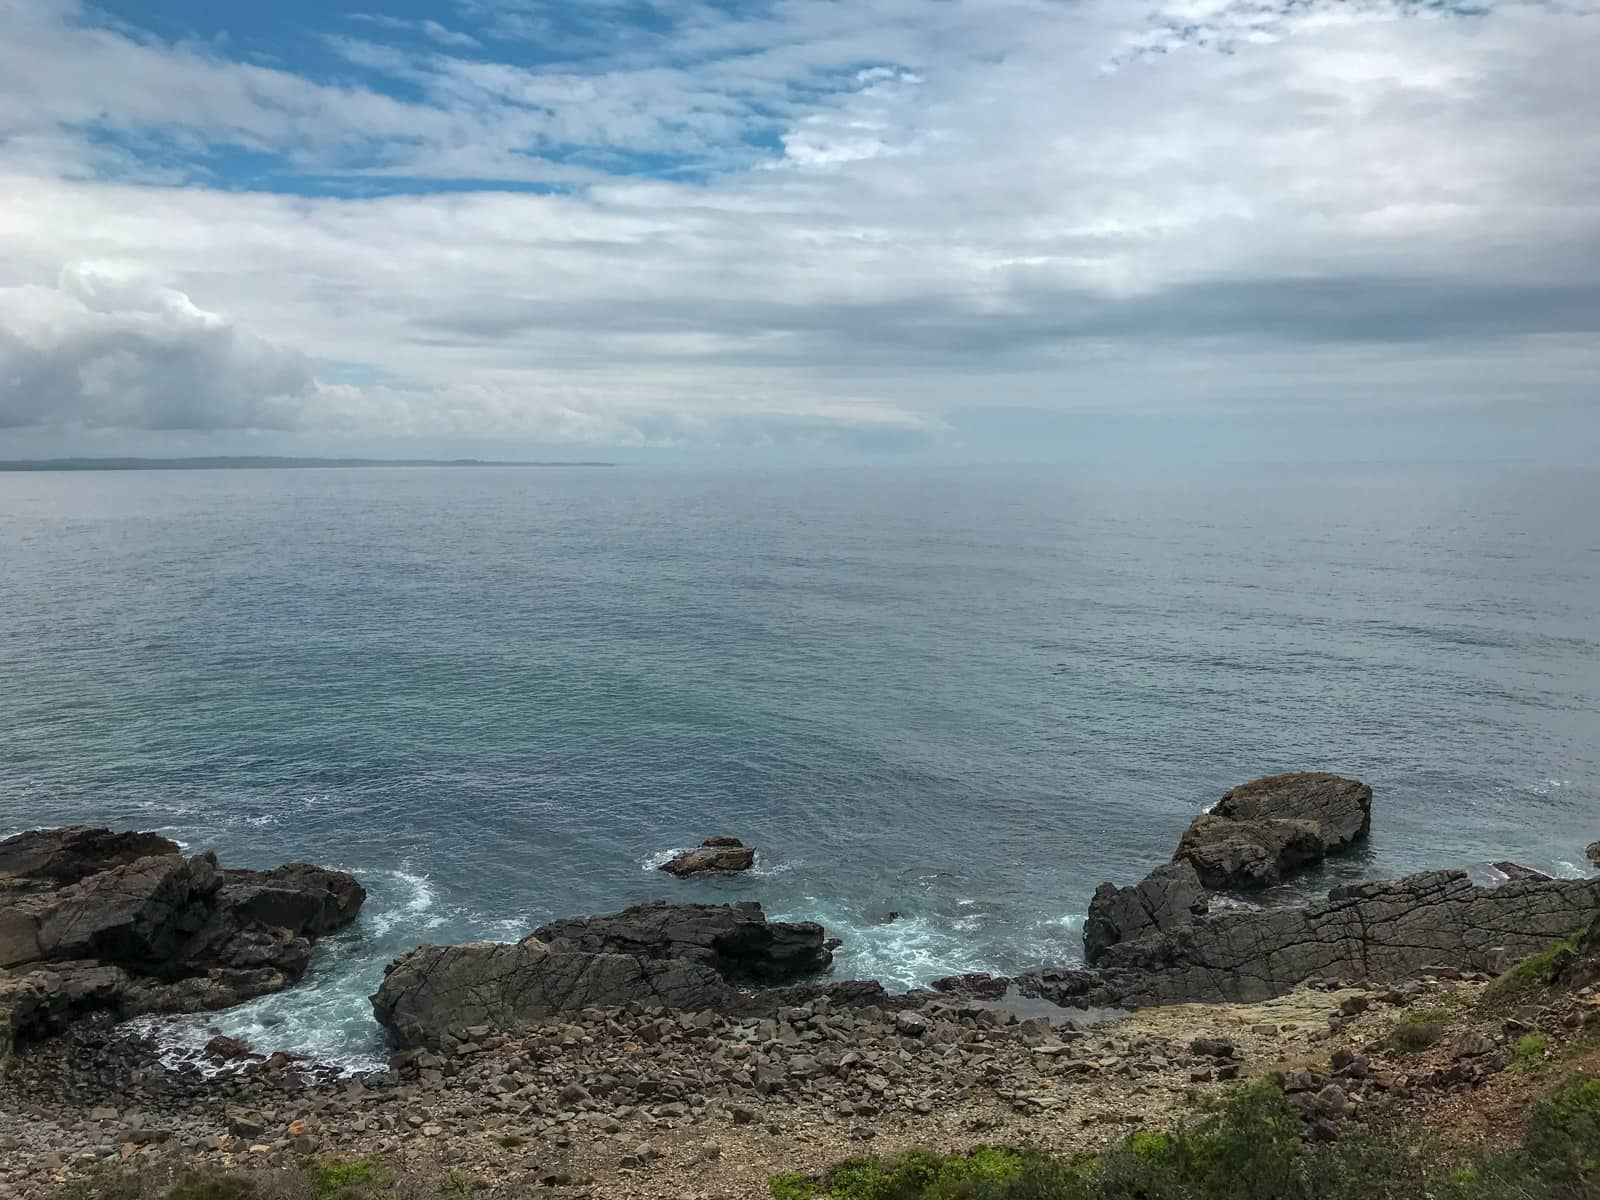 A view of the ocean, with a cloudy sky. In the foreground were some large rocks which are also partially immersed in the water.